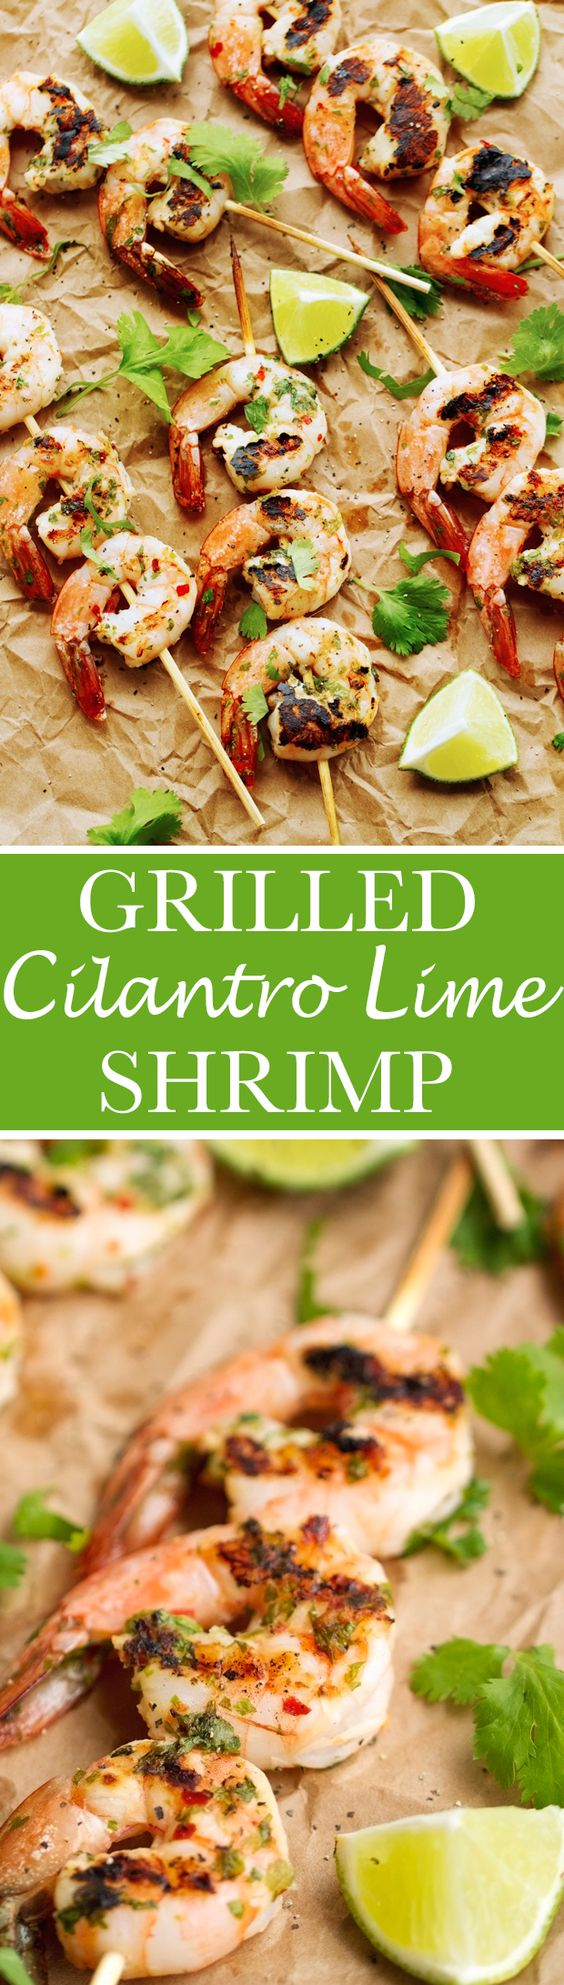 Grilled Cilantro + Lime Shrimp Skewers that are perfect for grilling ...